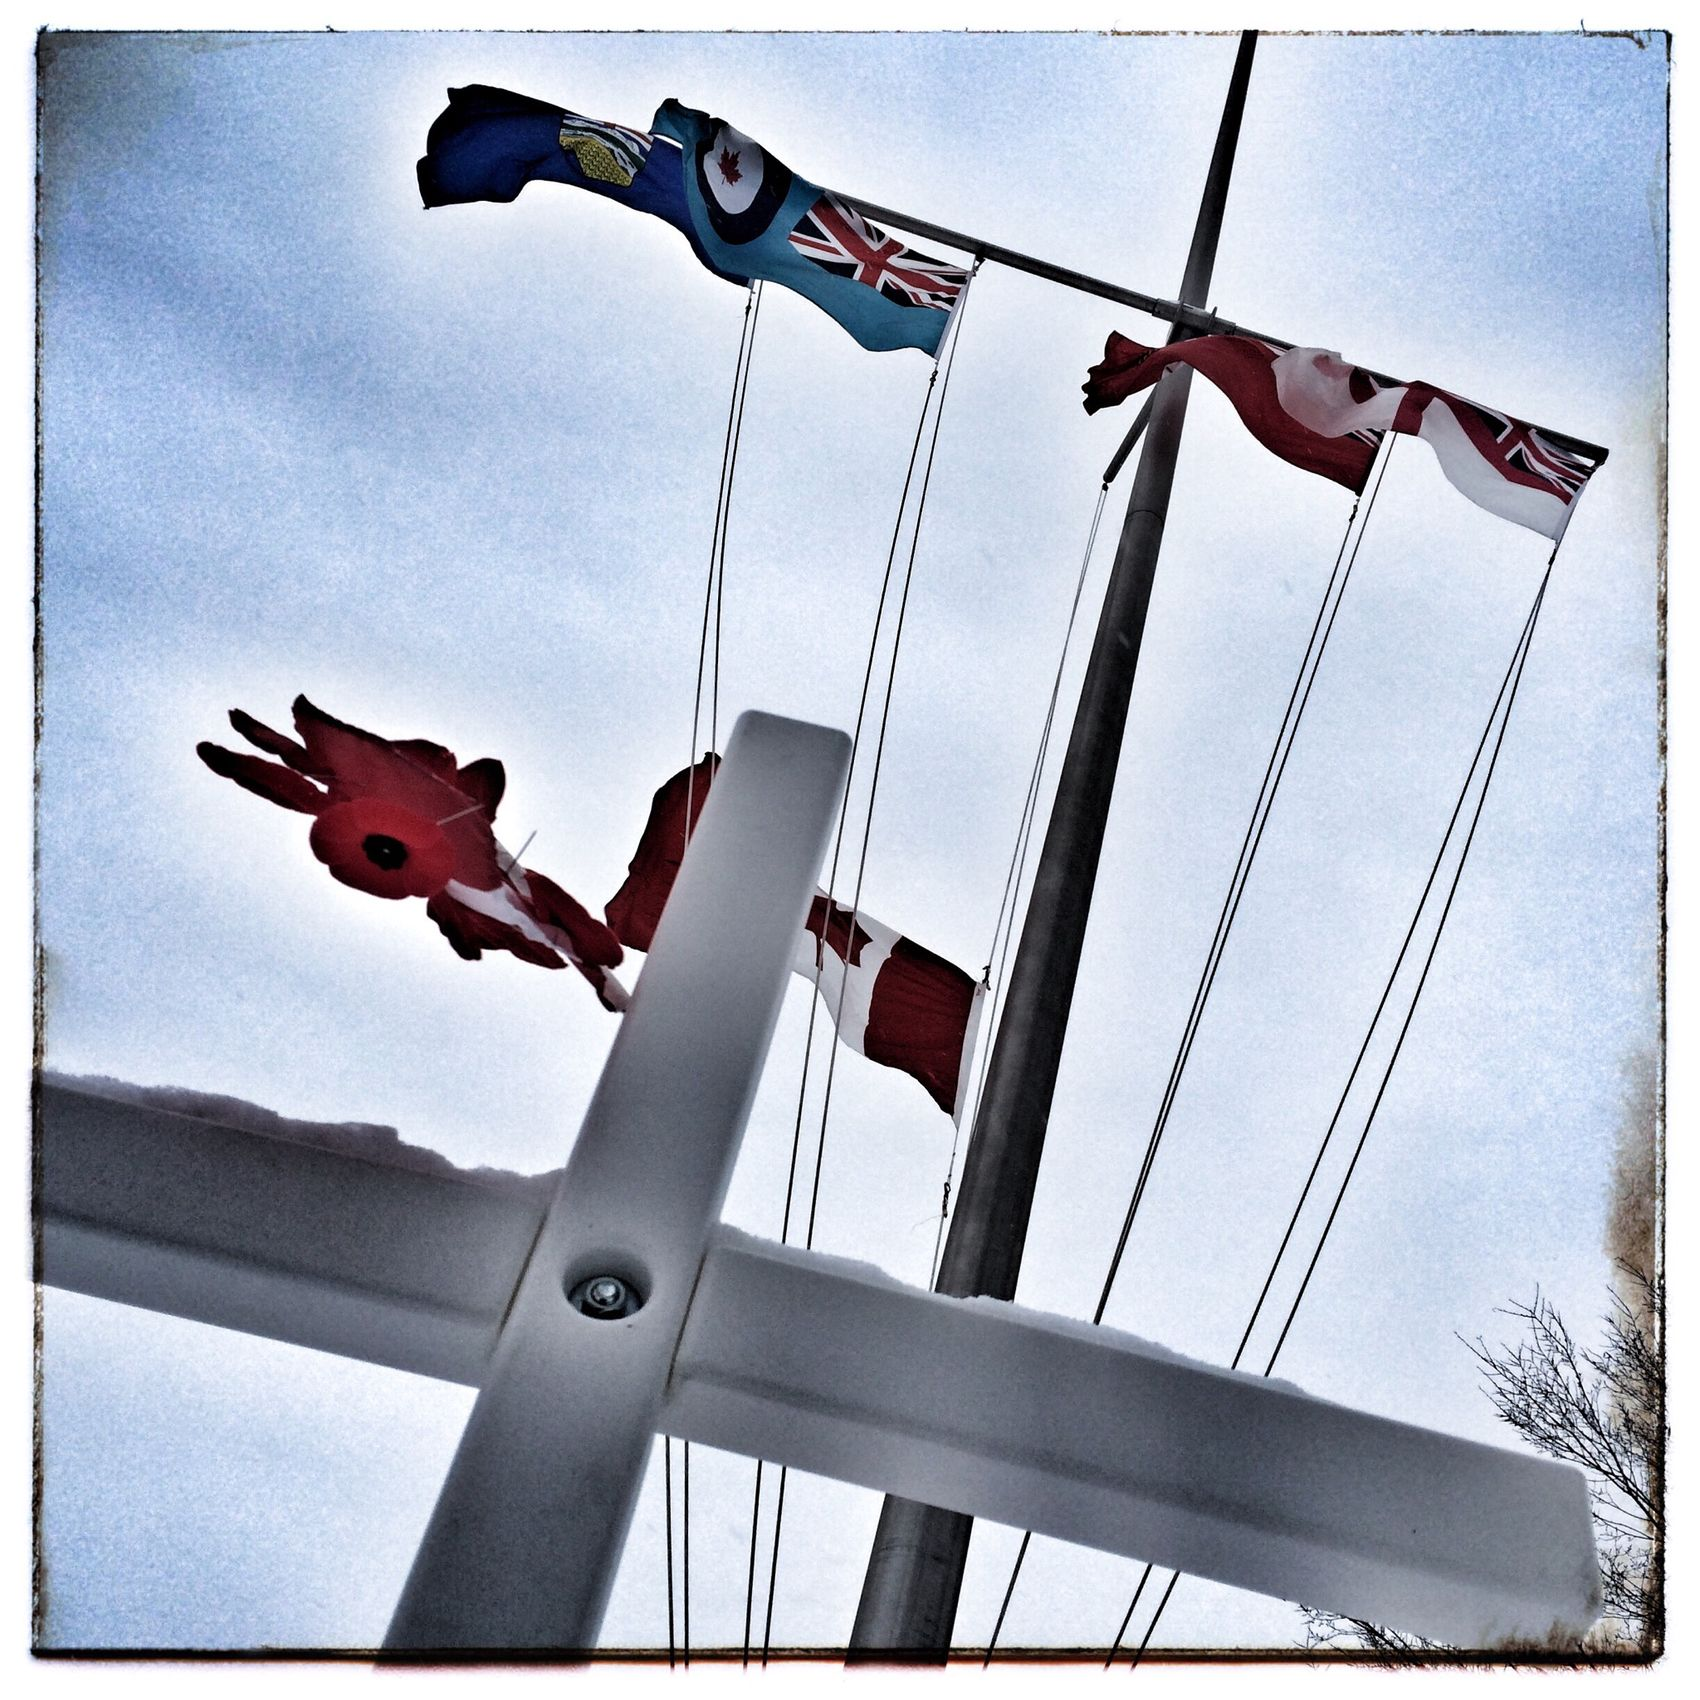 Waiting for Remembrance Day service to begin. Photography Photo Of The Day Remembrance Iphone 5